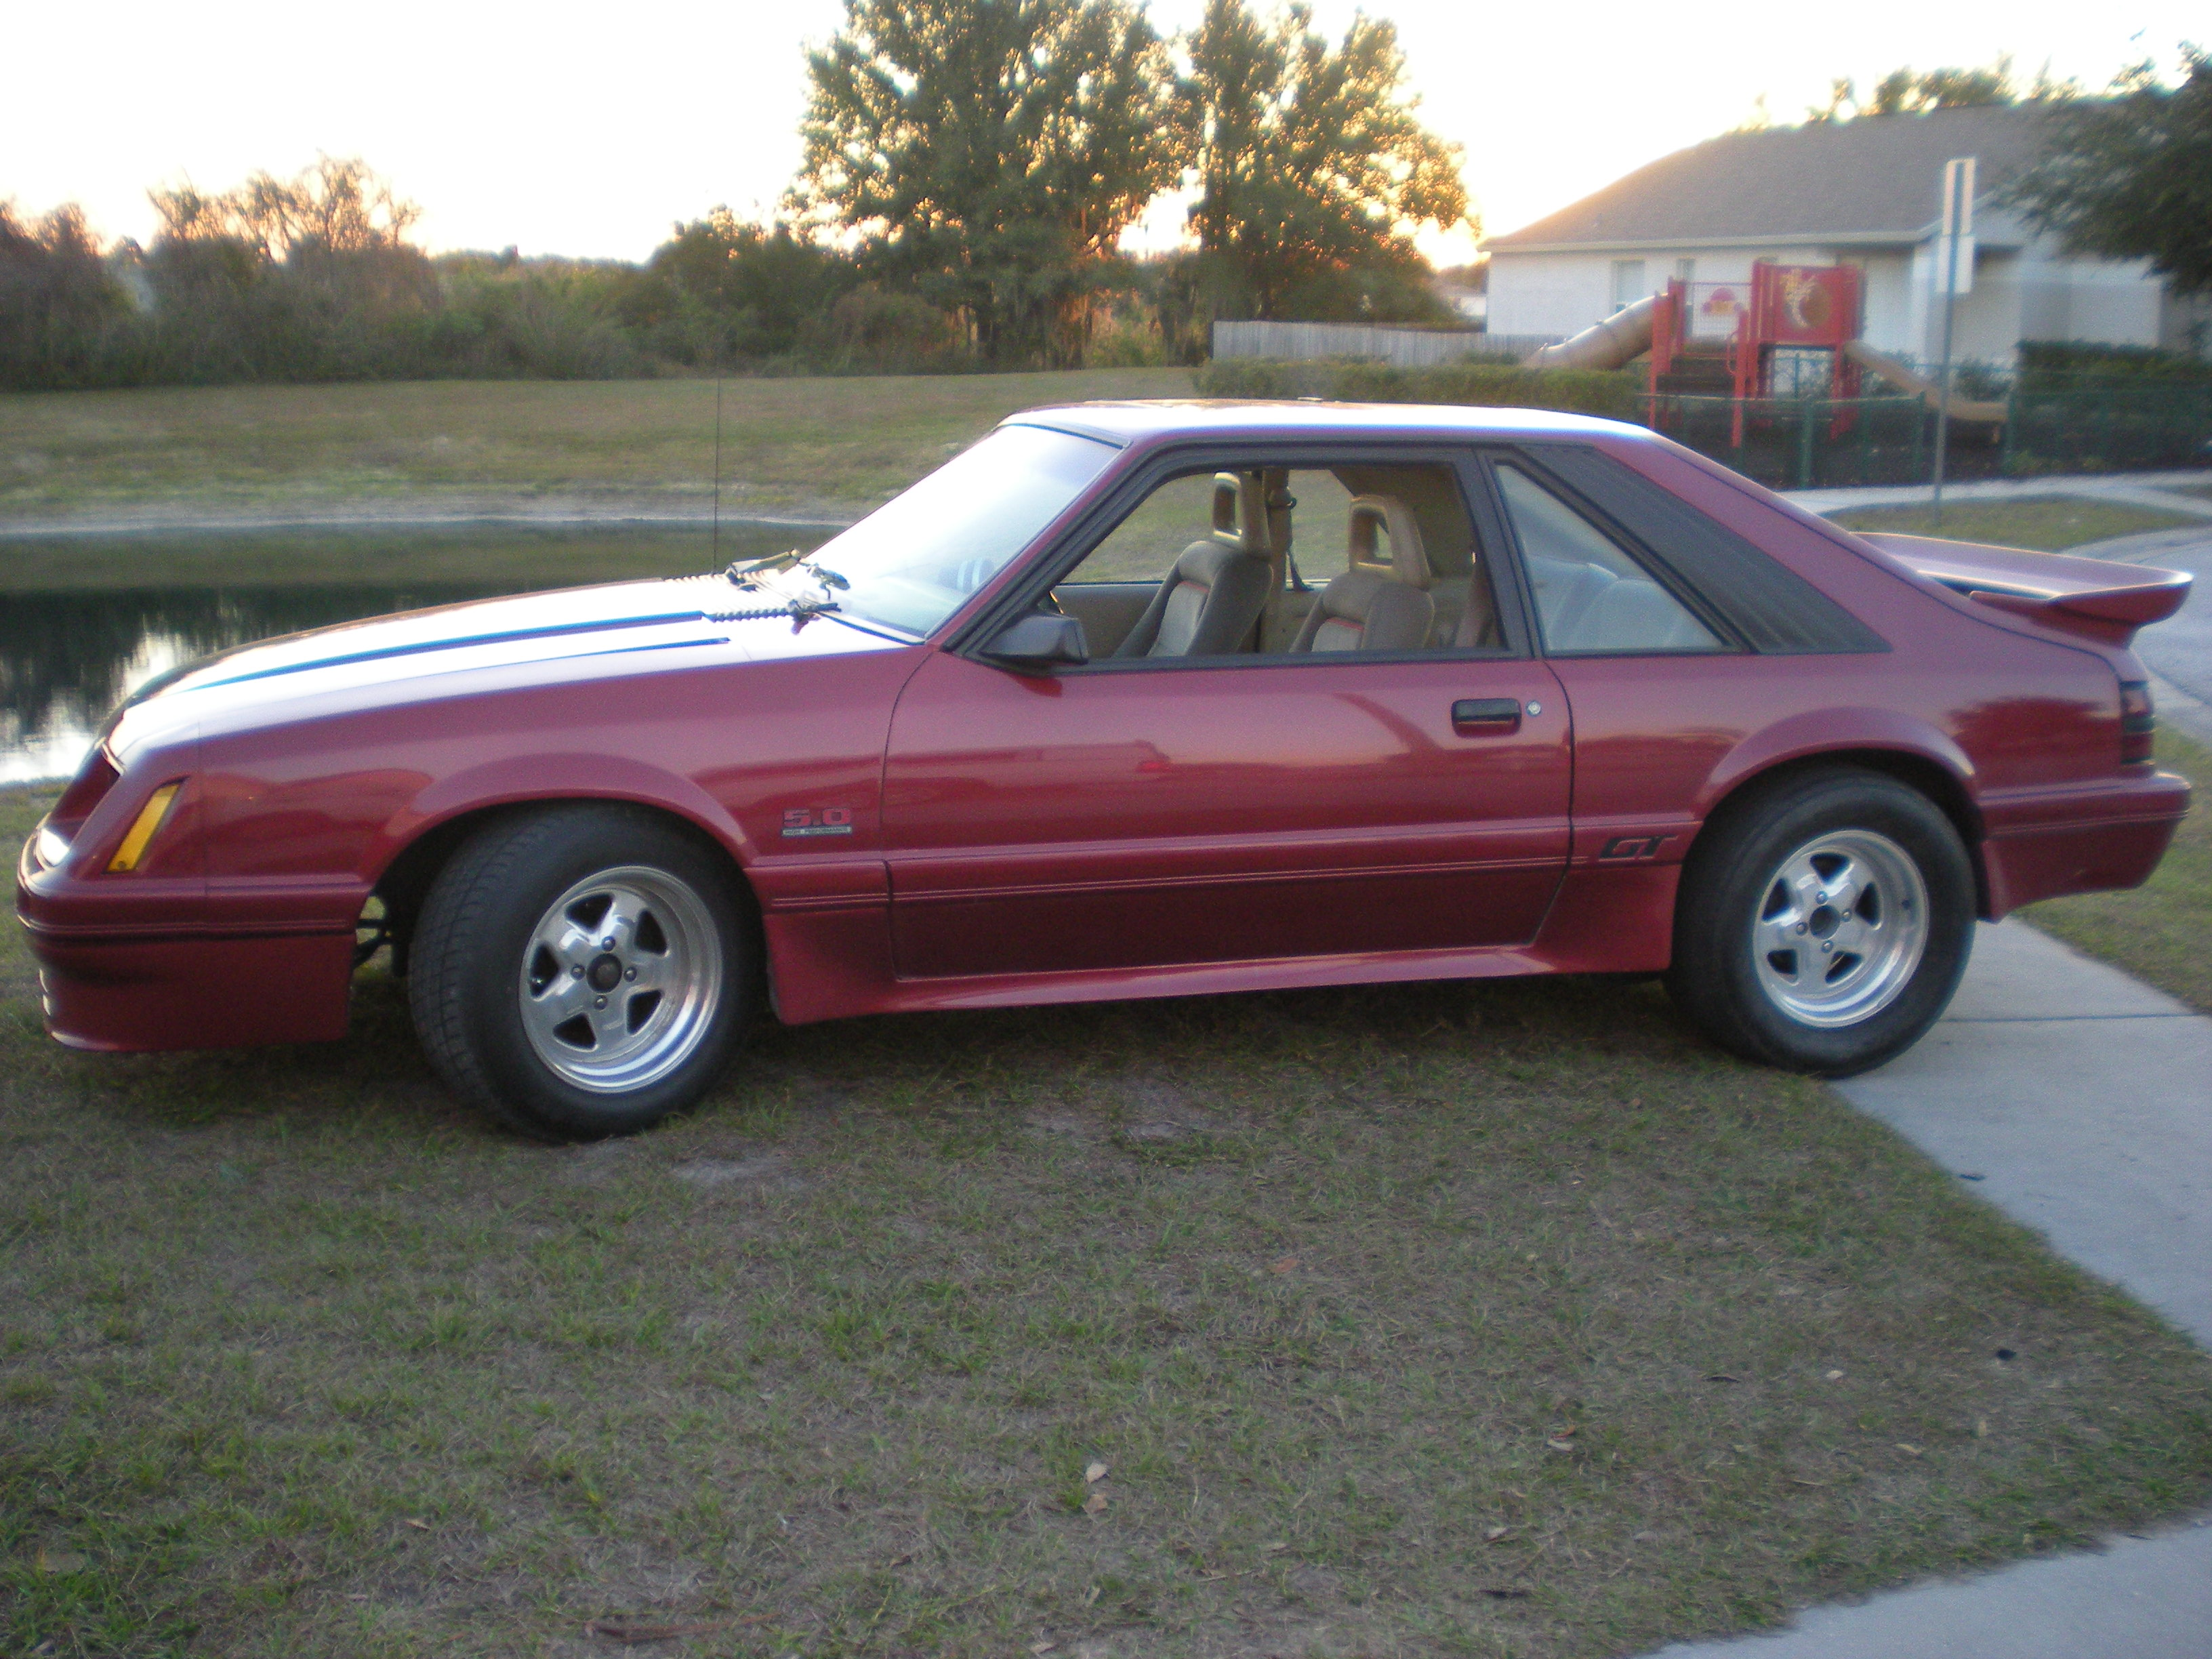 1985 ford mustang gt picture mods upgrades